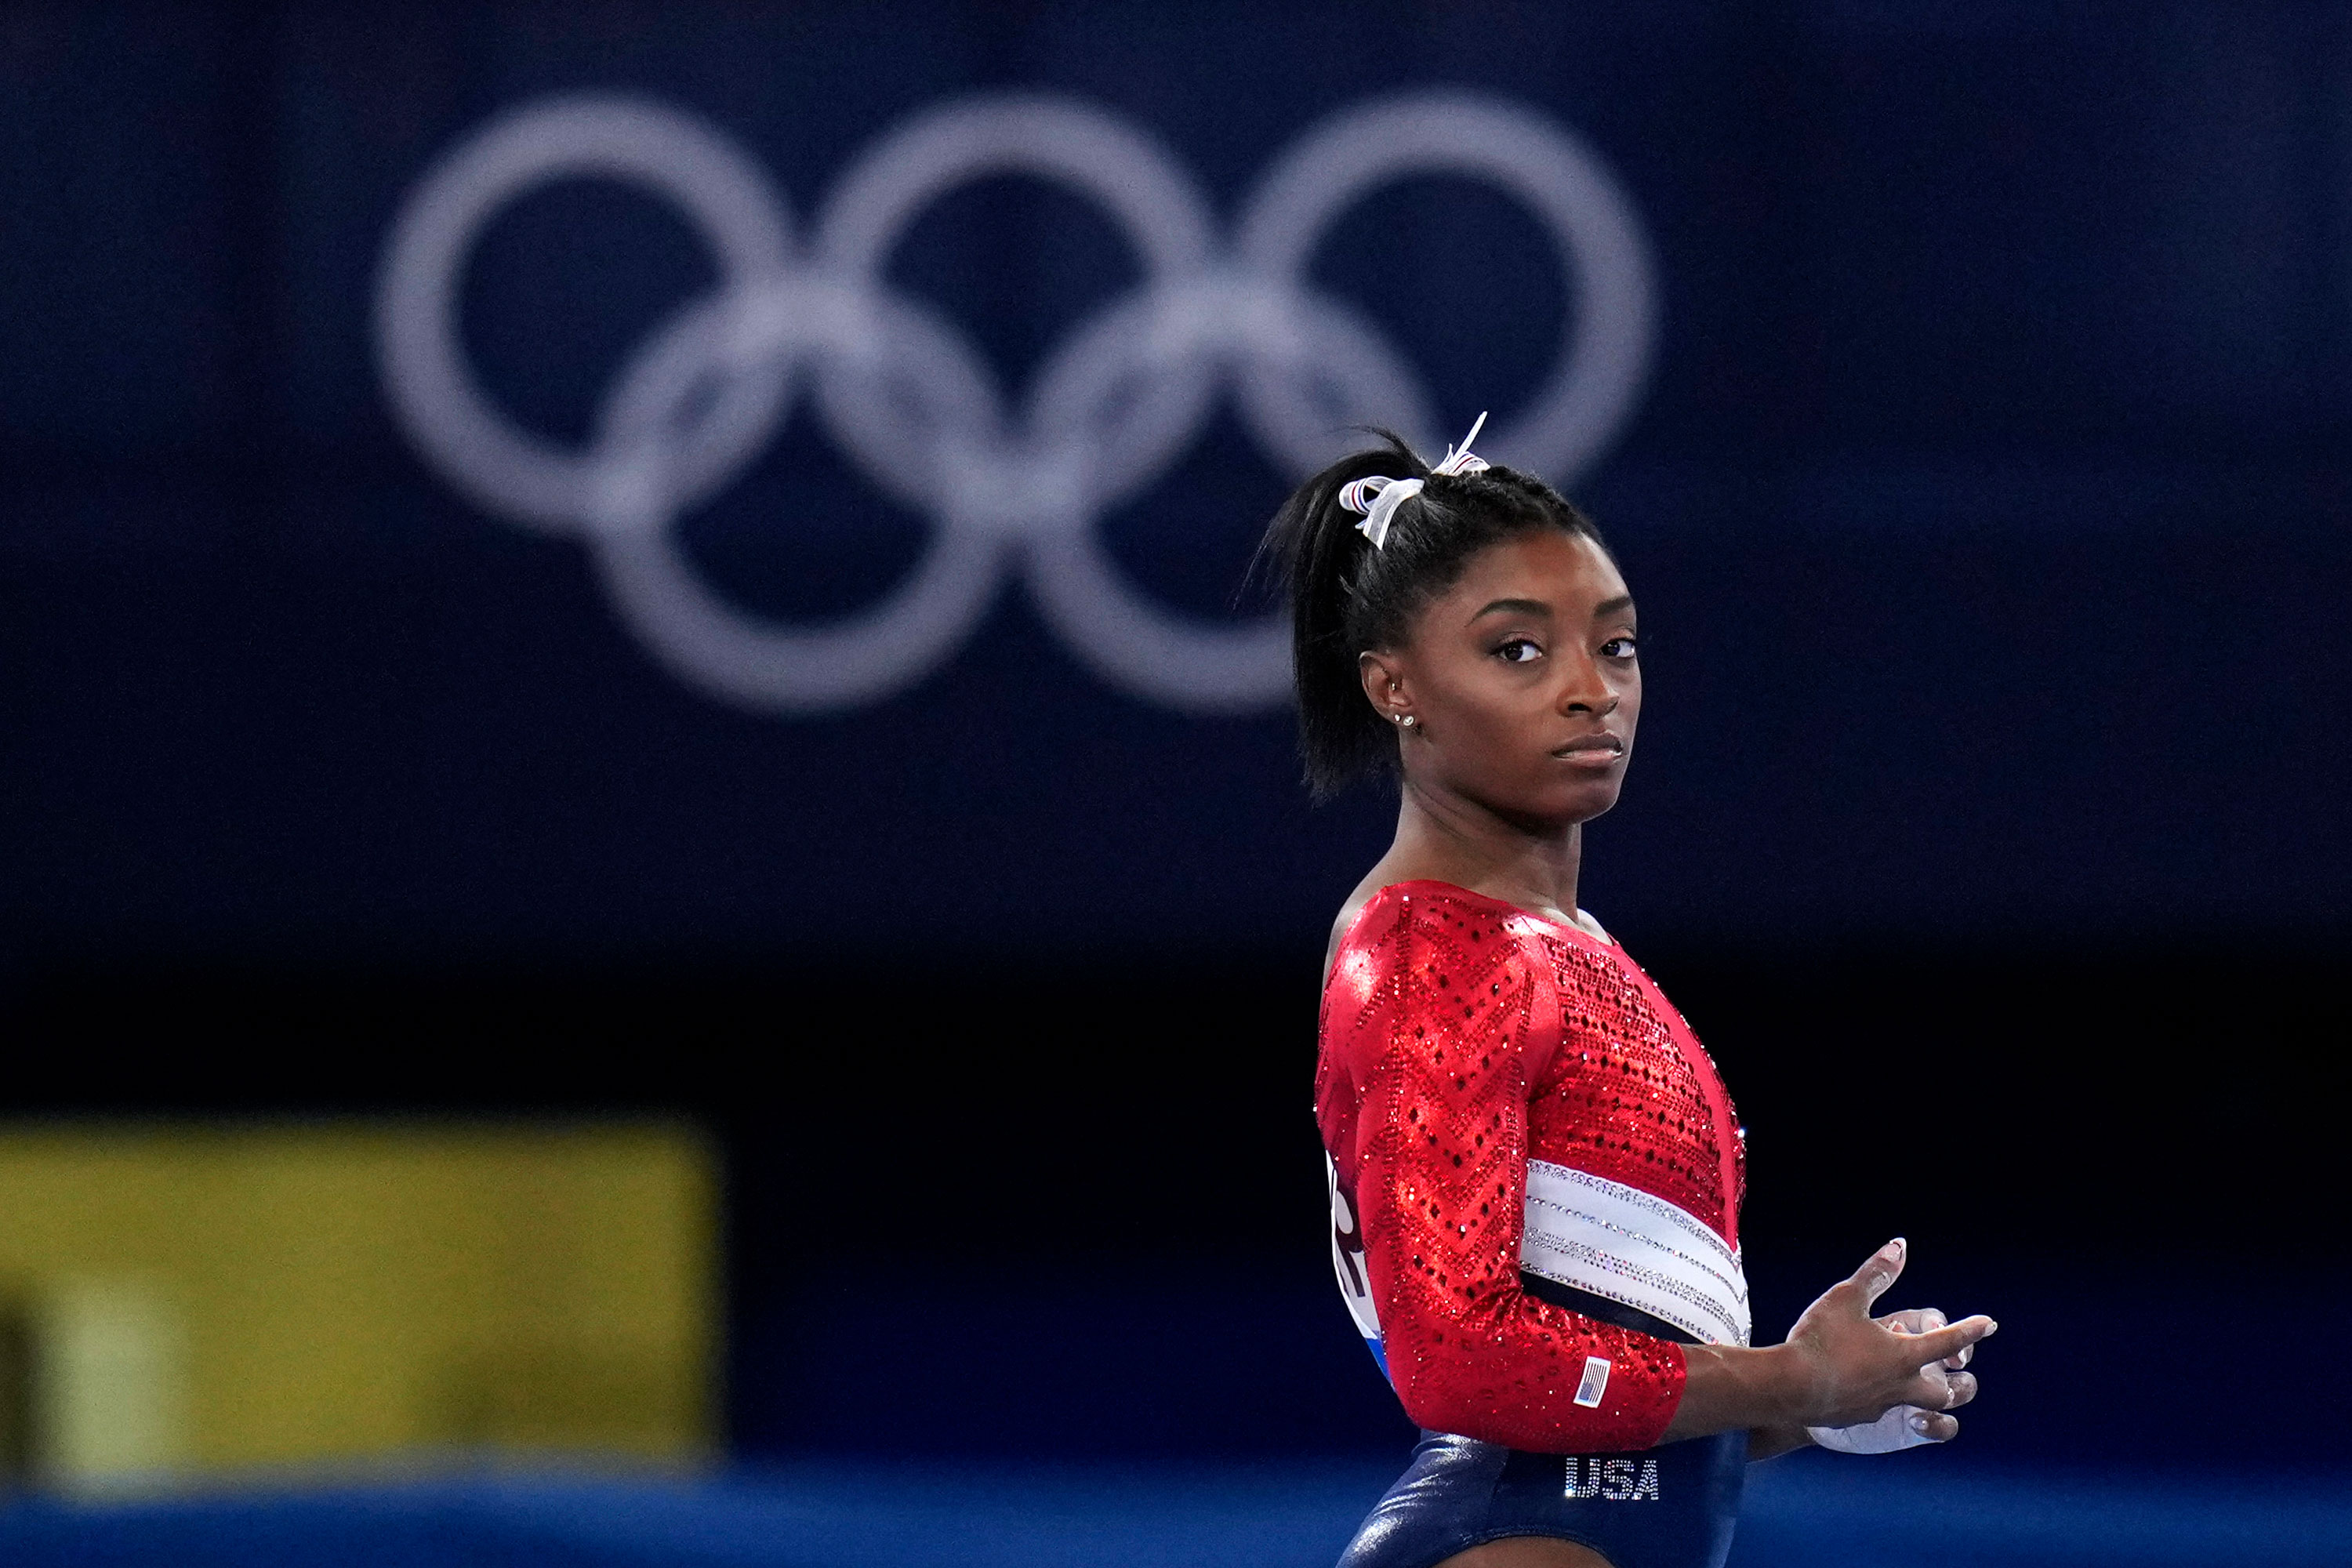 Simone Biles waits to perform on the vault during the artistic gymnastics final on July 27.